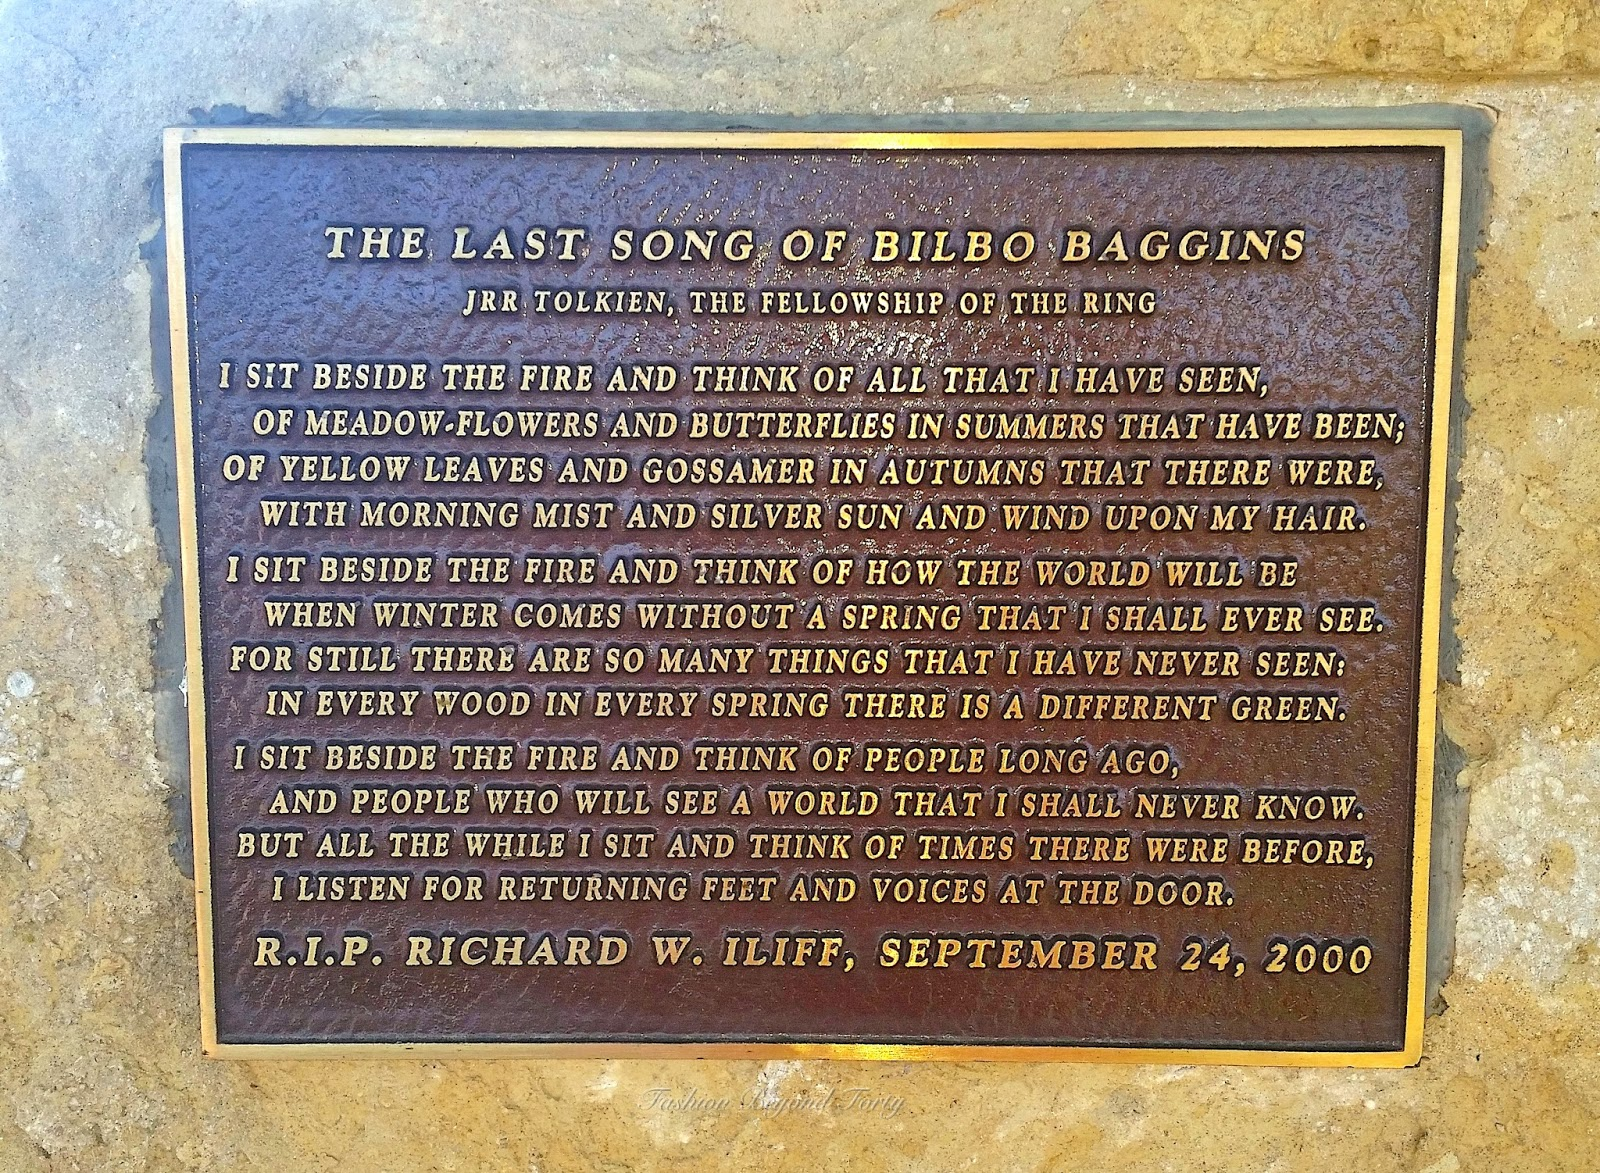 The Last Song of Bilbo Baggins at Iliff Commons